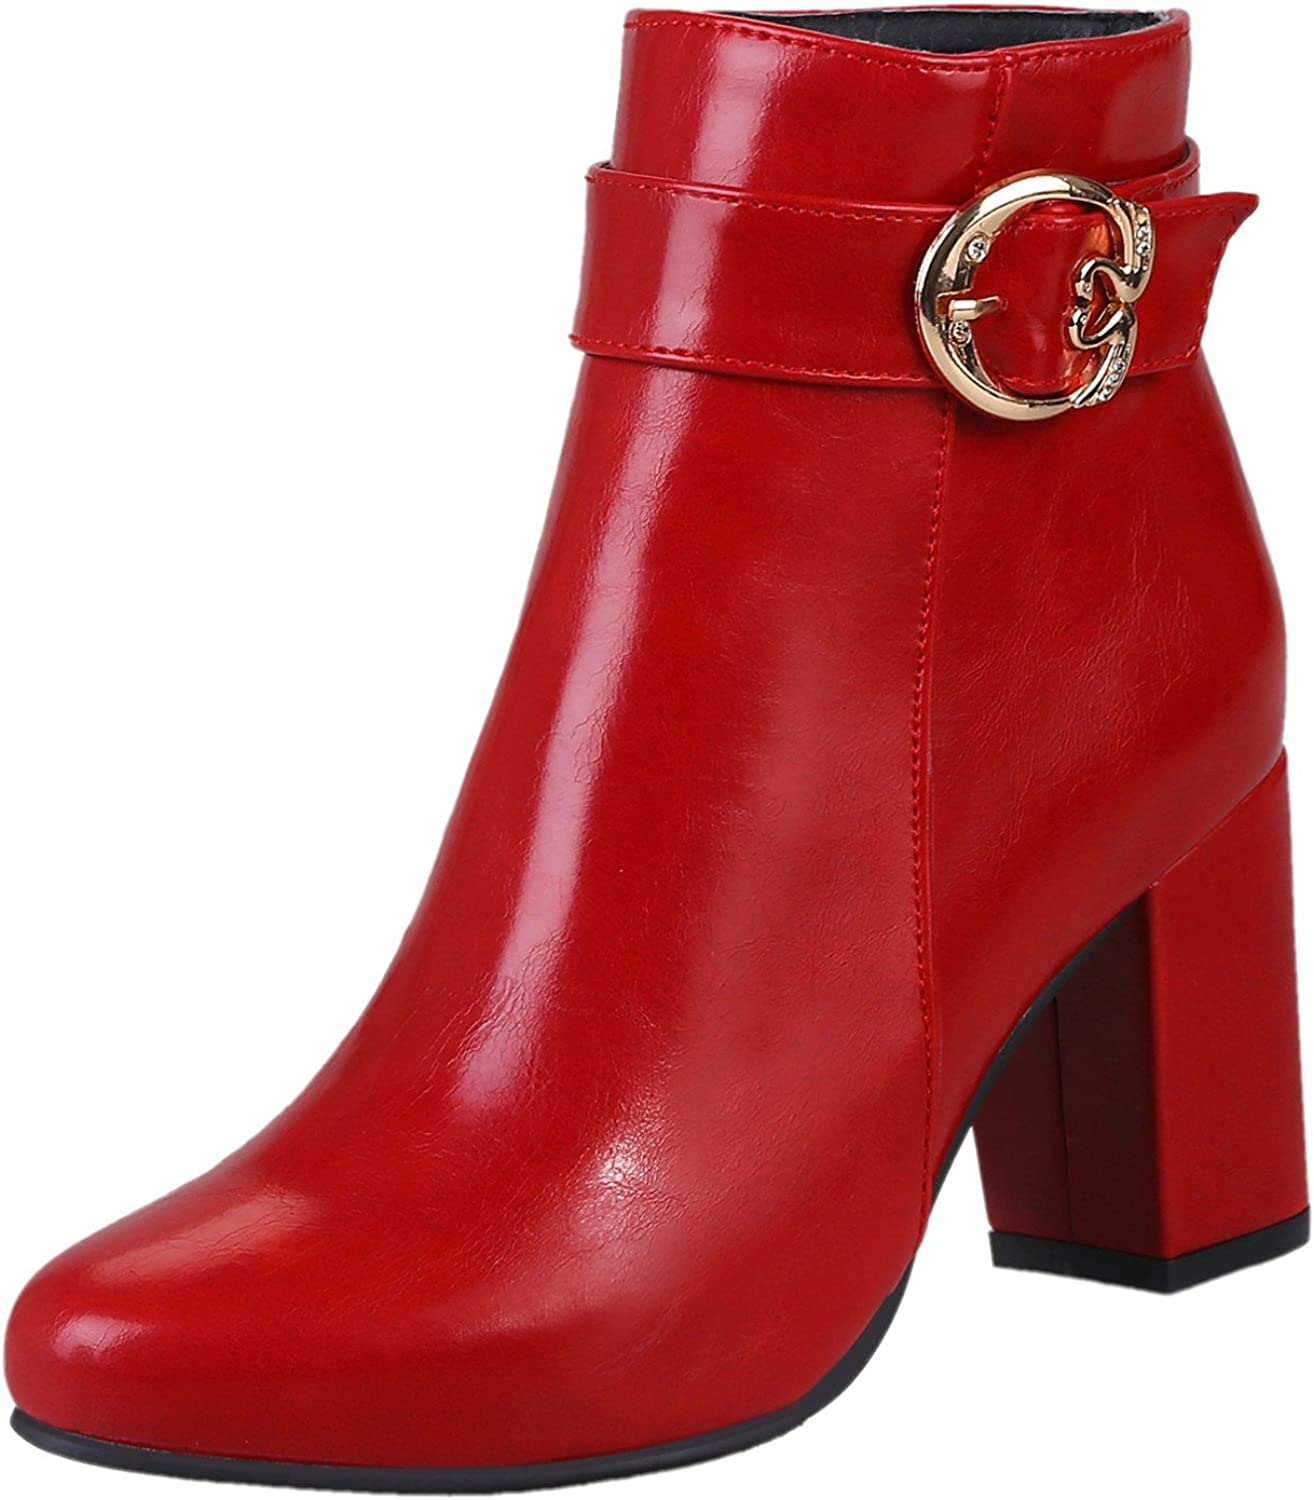 Rongzhi Womens Ankle Boots Chunky Block Heel Buckle Strap Zipper Dress Party Formal Booties Pointed Toe